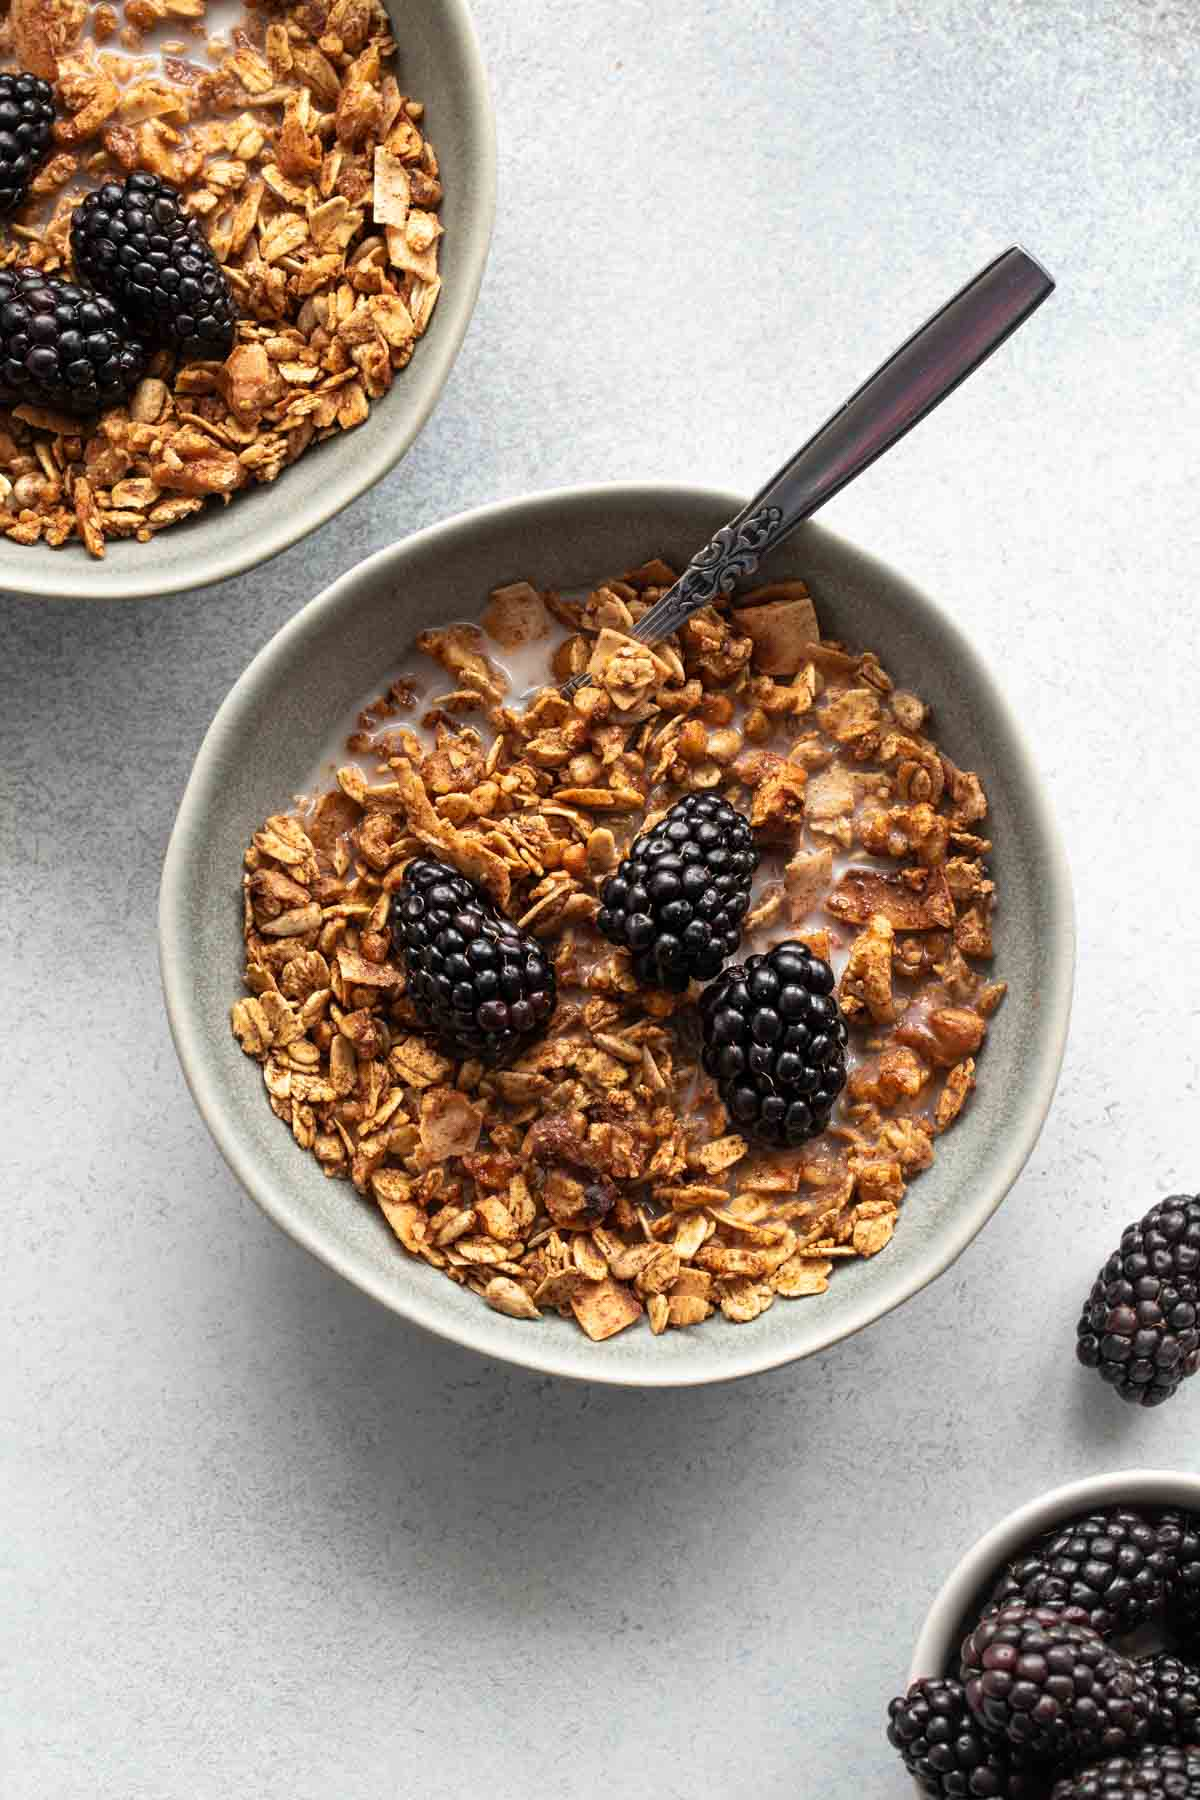 Overhead view of maple granola in a grey bowl and topped with almond milk and blackberries, with another bowl of granola off to the side.